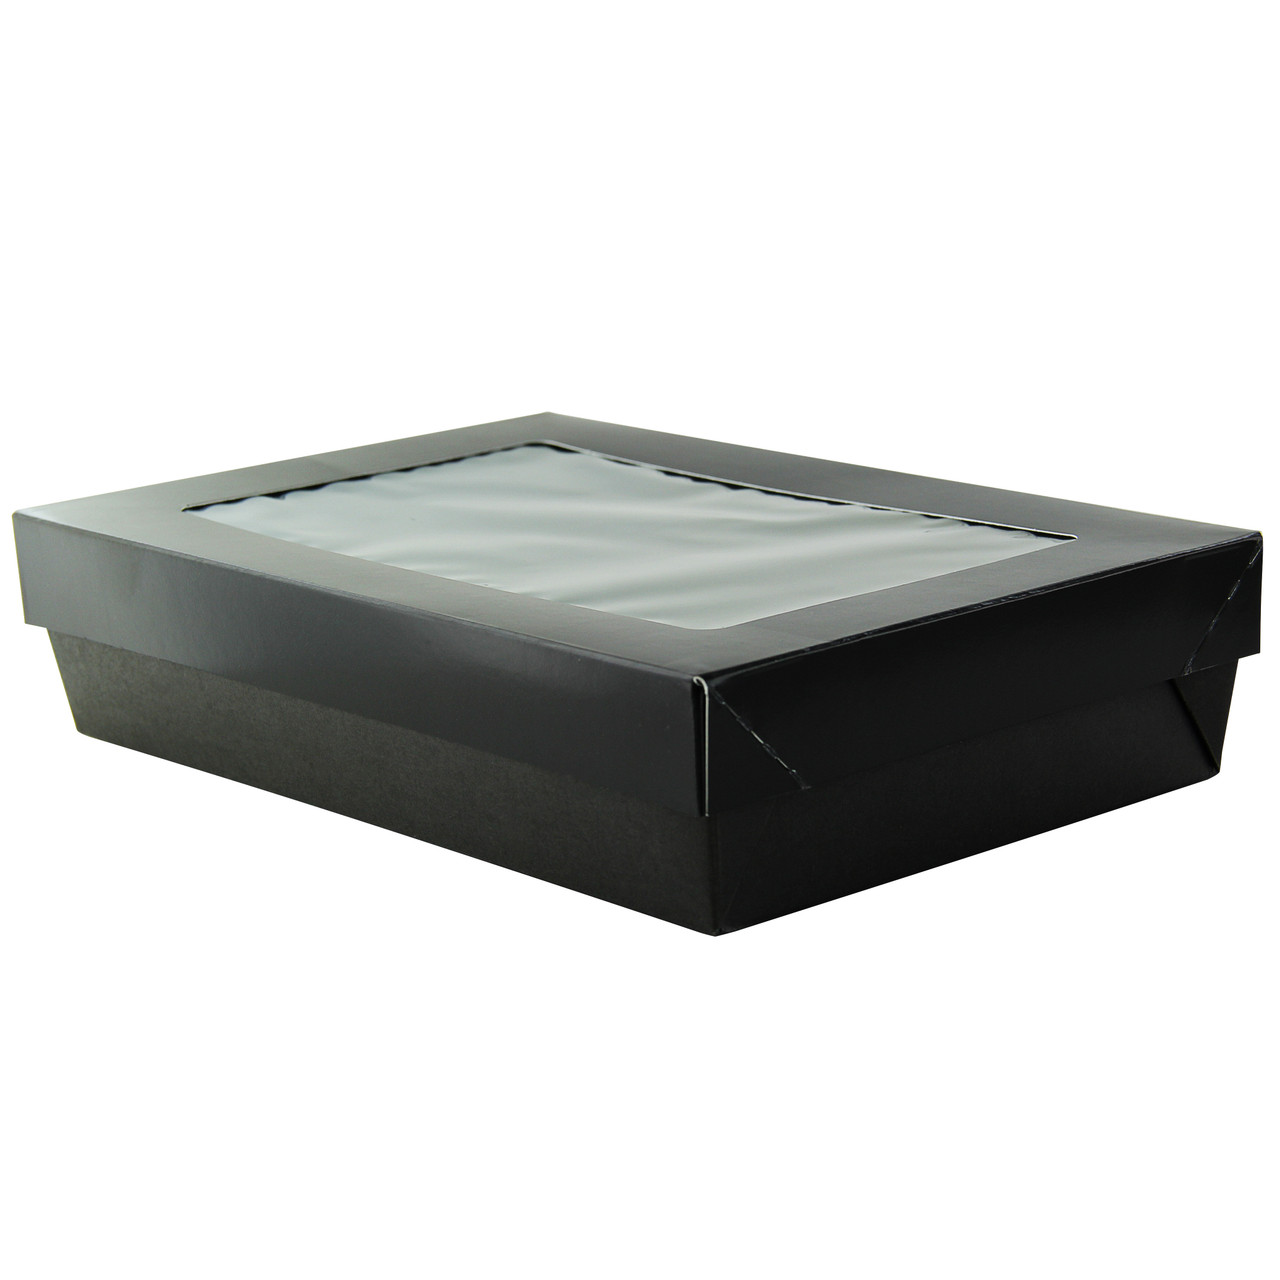 Order A Sample - Bakeable Black Kray Box With Pet Lid -12oz L:9.25 x W:5.5 x H:1.9in